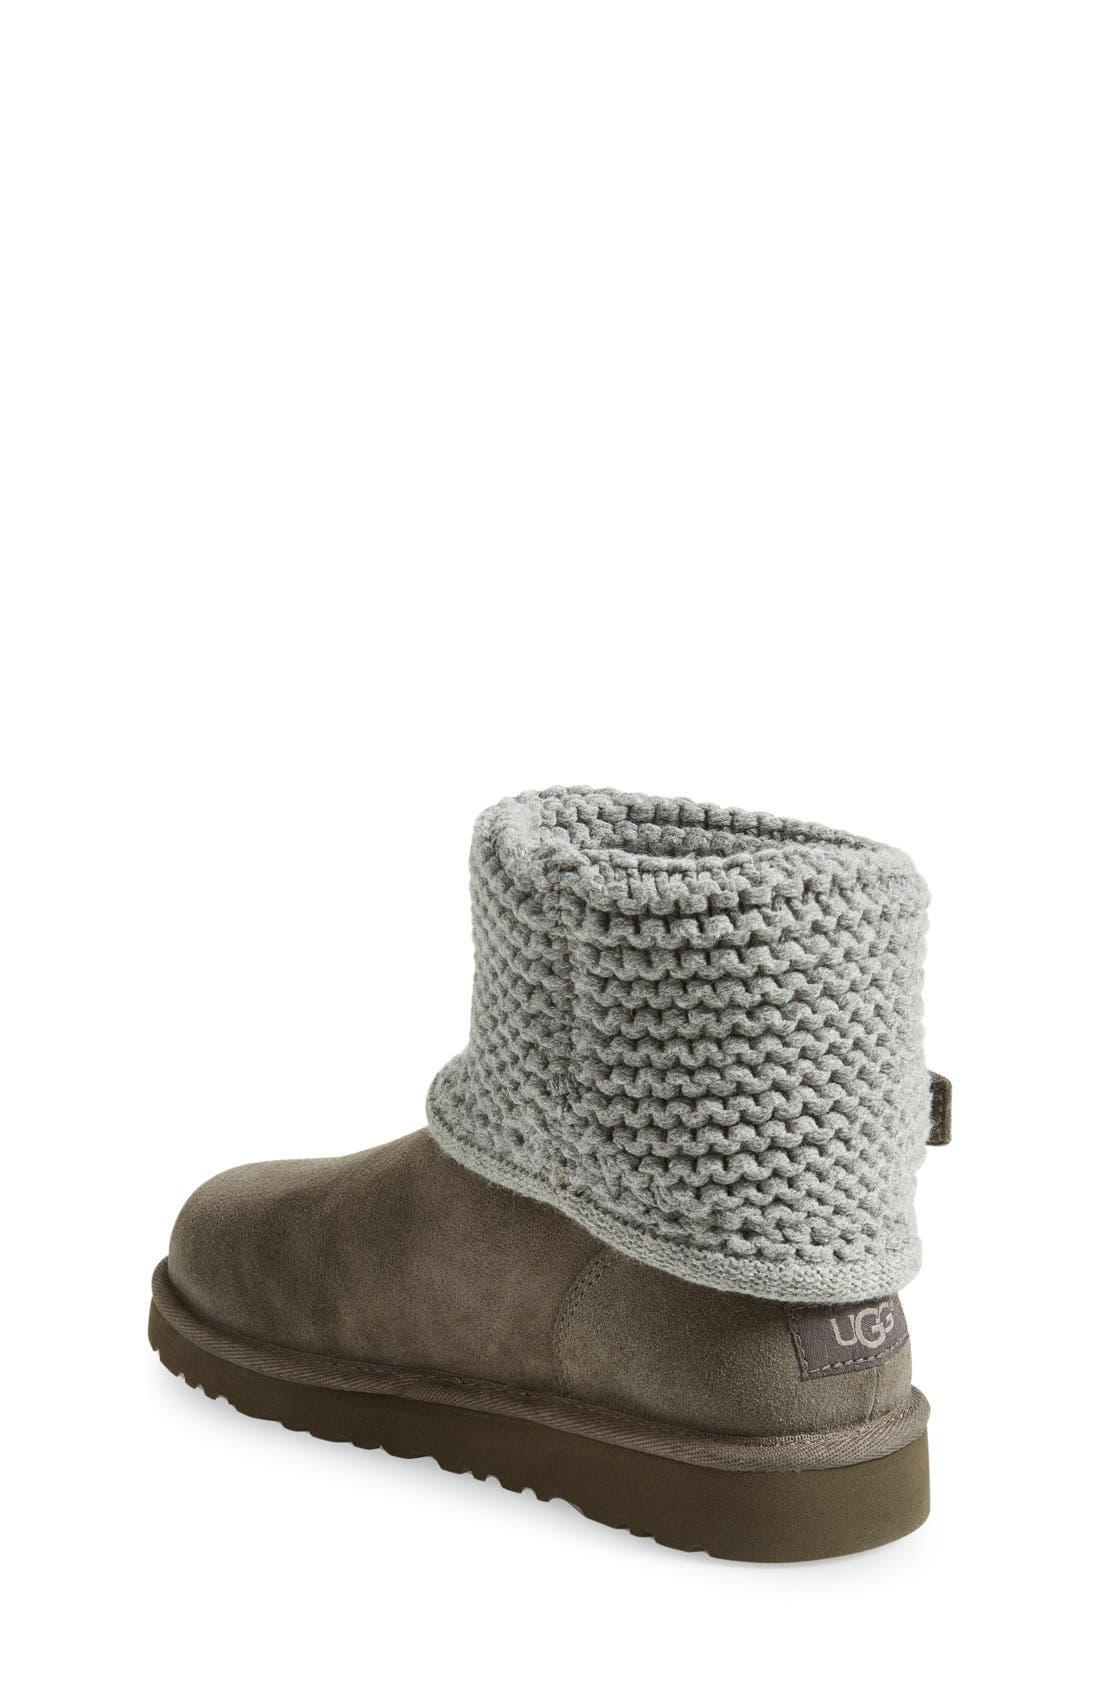 Alternate Image 2  - UGG® Darrah Purl Knit Cuff Boot (Little Kid & Big Kid)